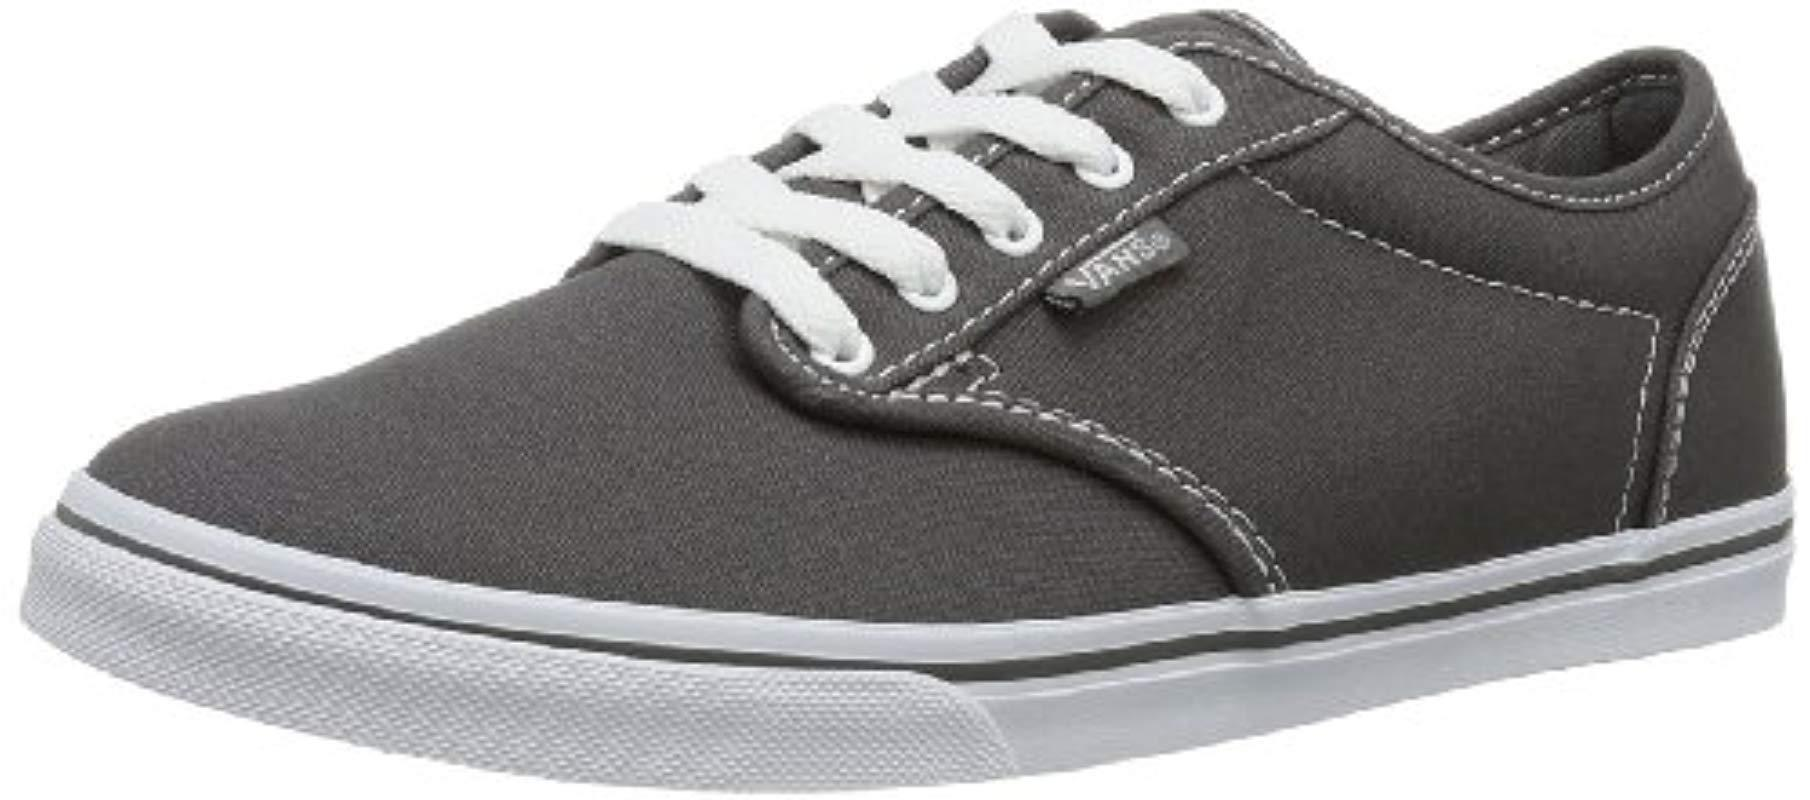 d18e169ad96535 Vans. Women s Atwood Low ...